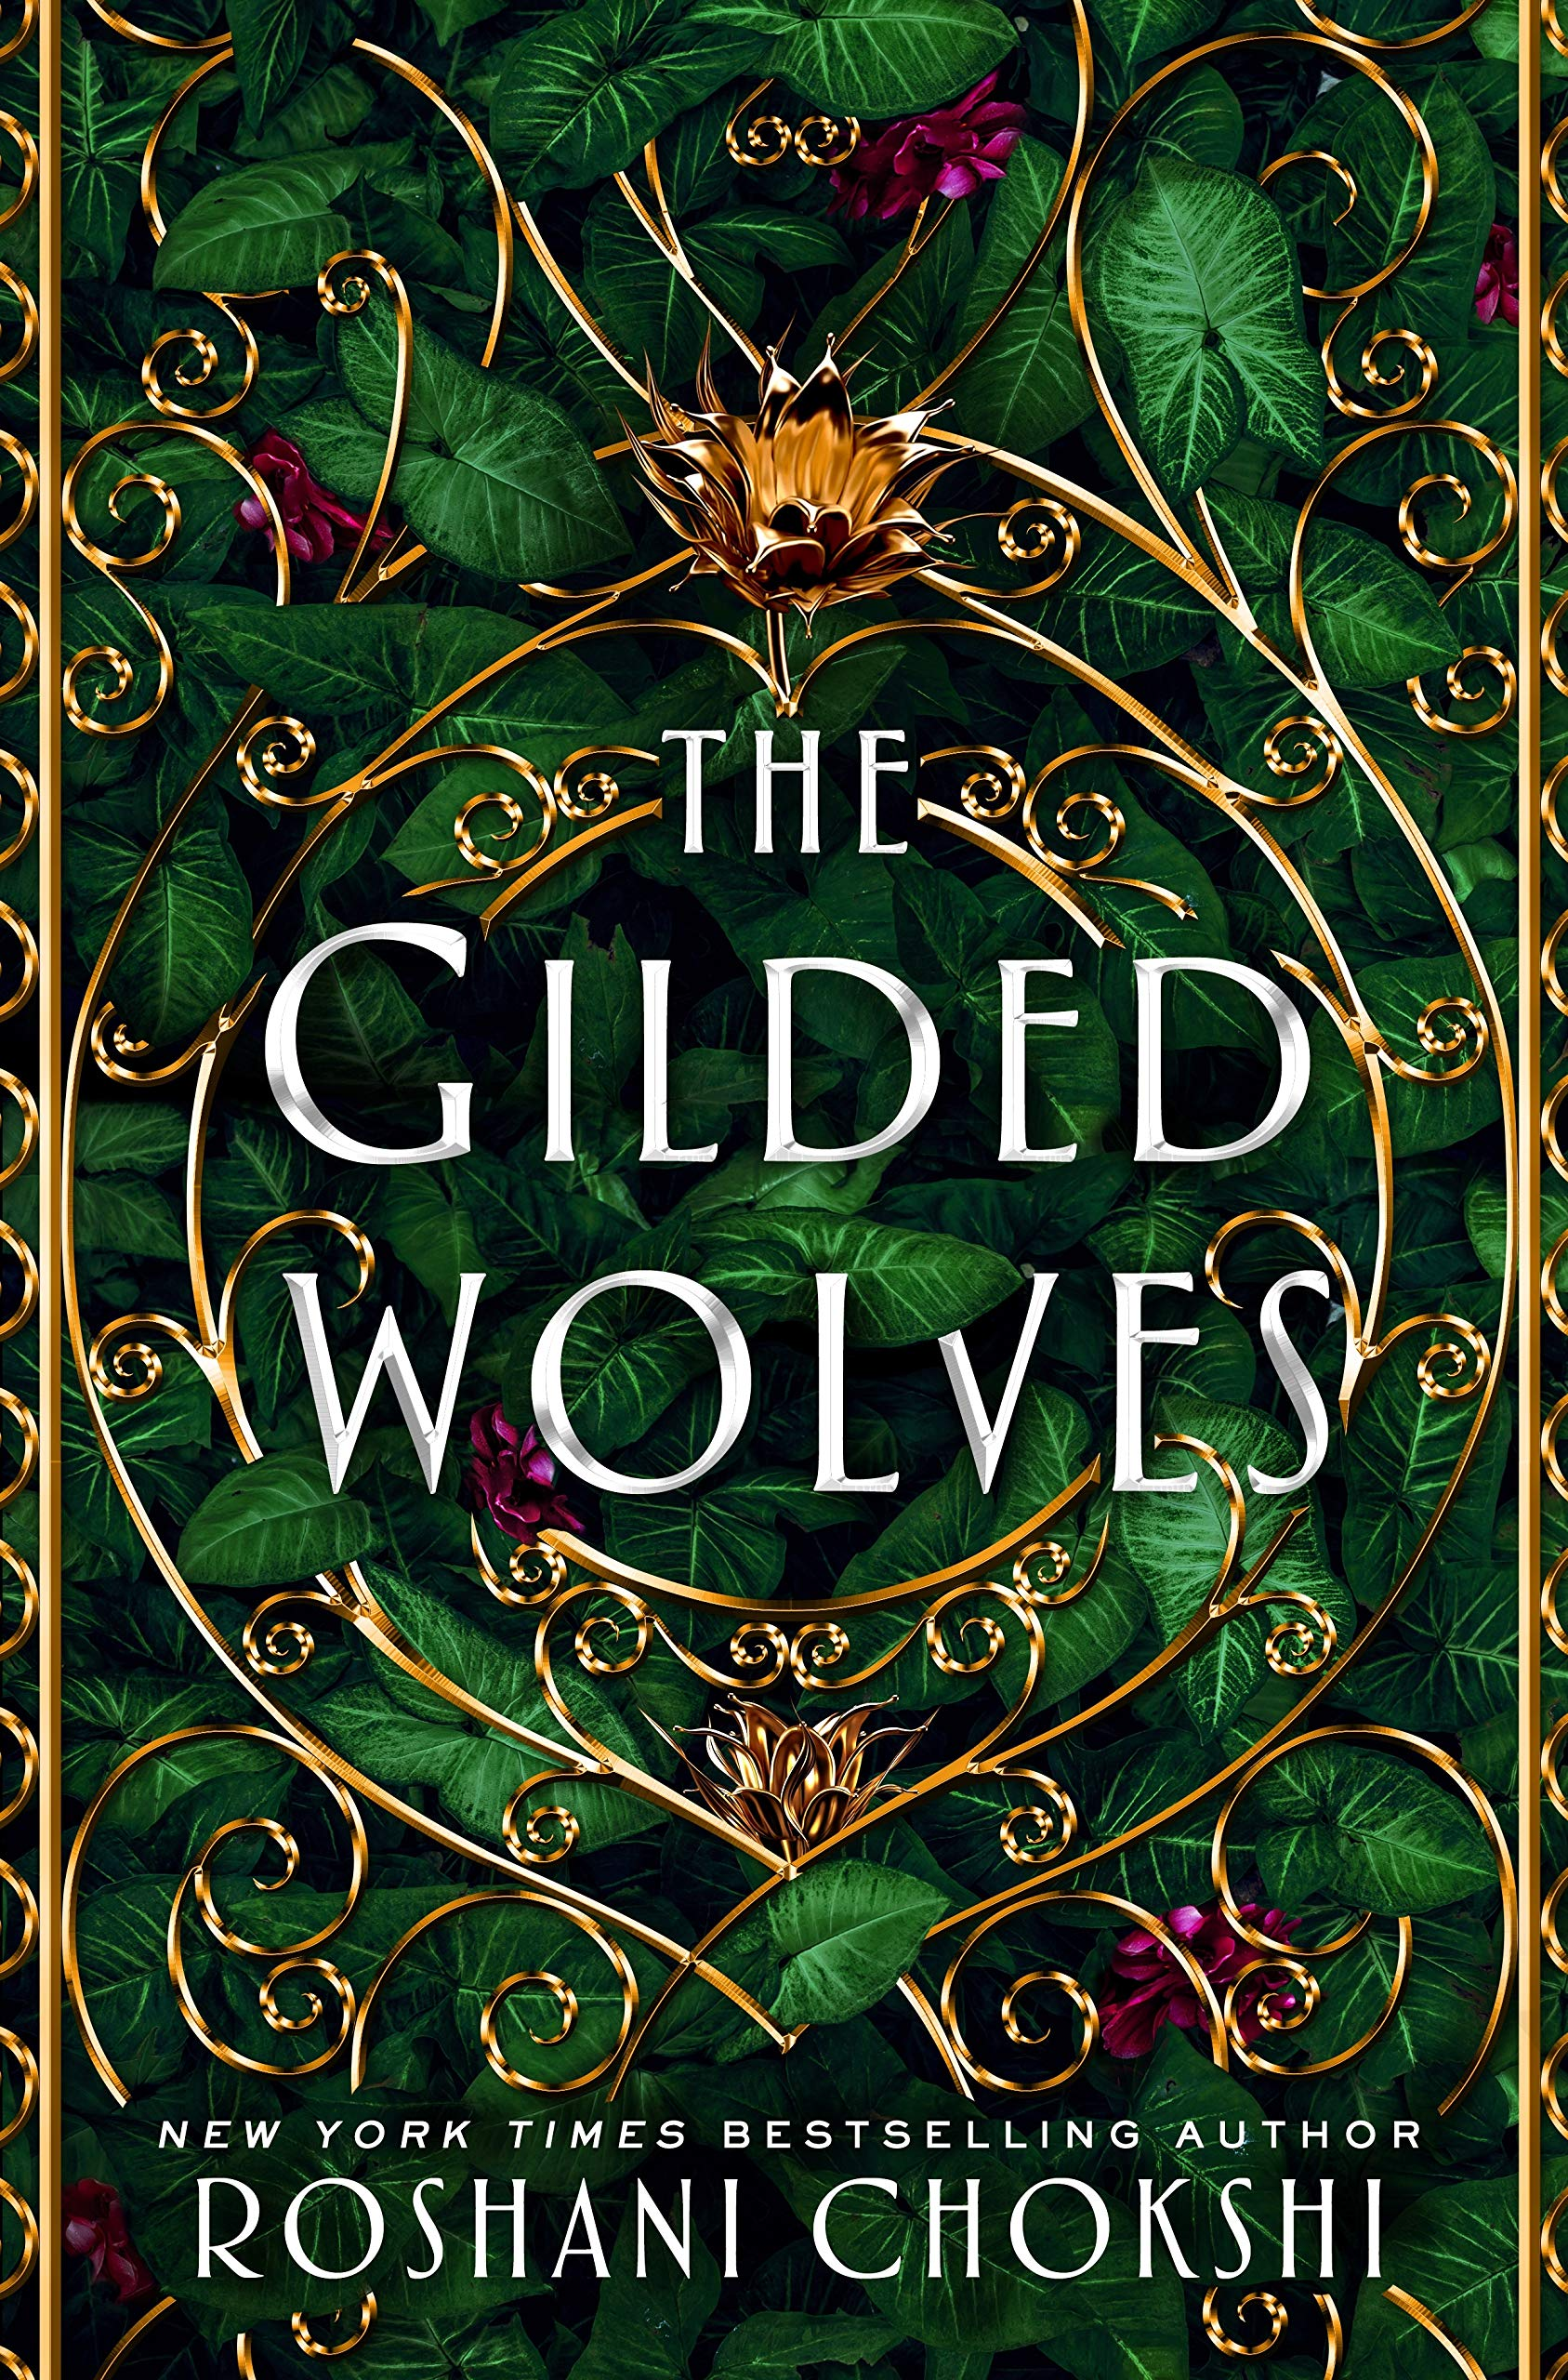 Amazon.com: The Gilded Wolves: A Novel (9781250144546): Chokshi ...